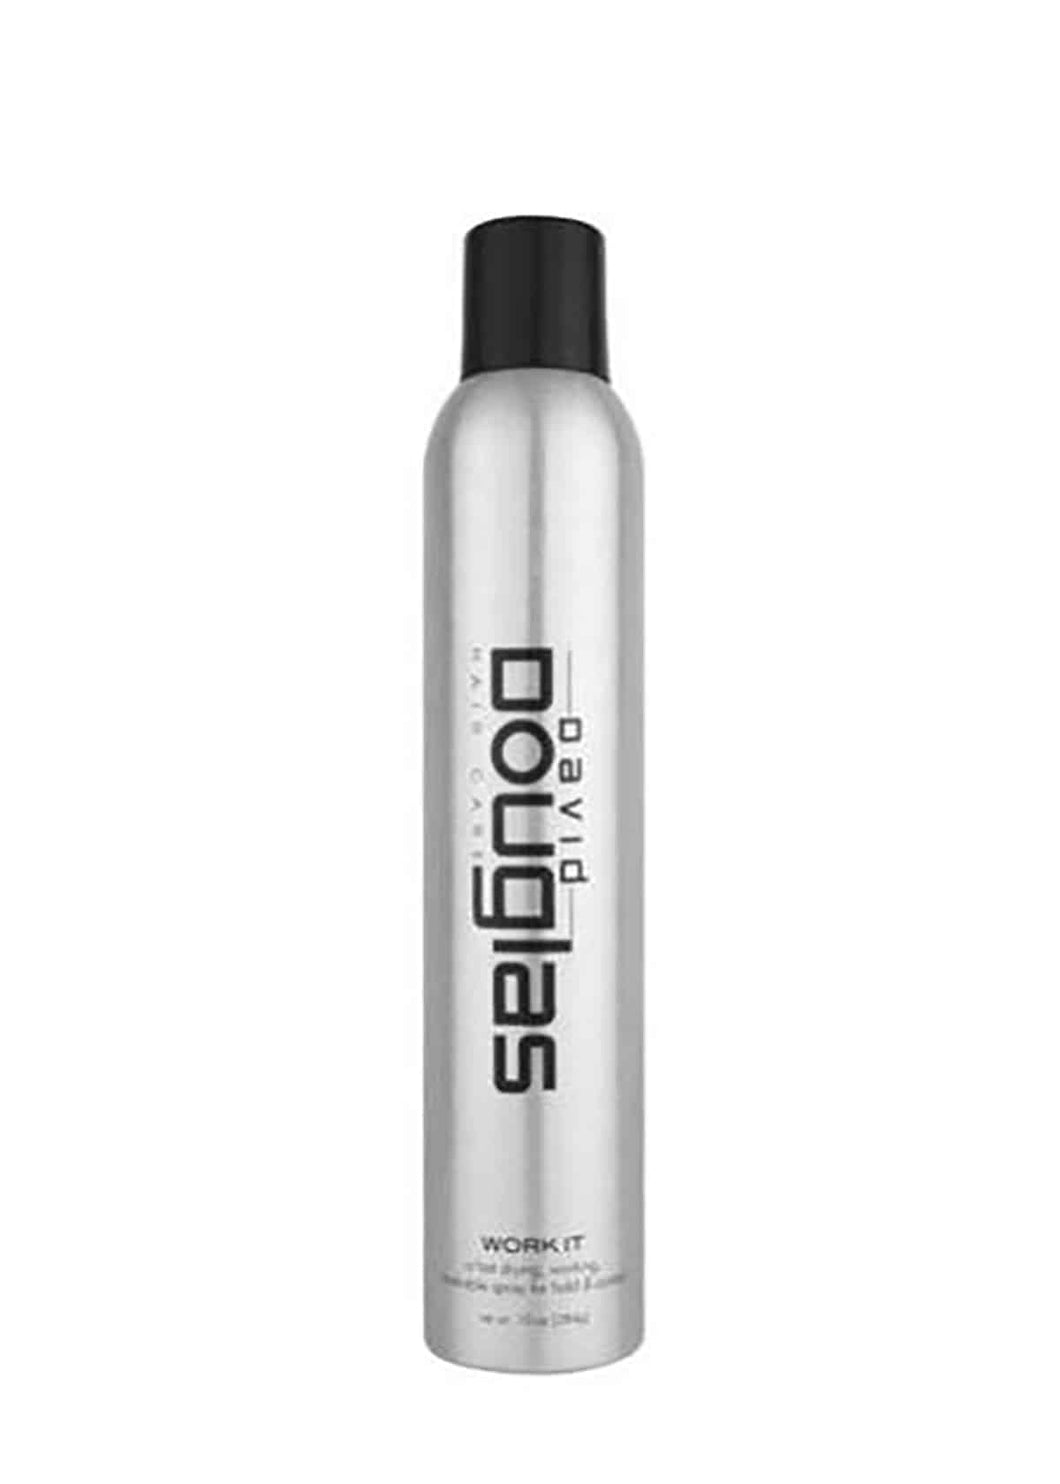 David Douglas Work It Hairspray 10 oz